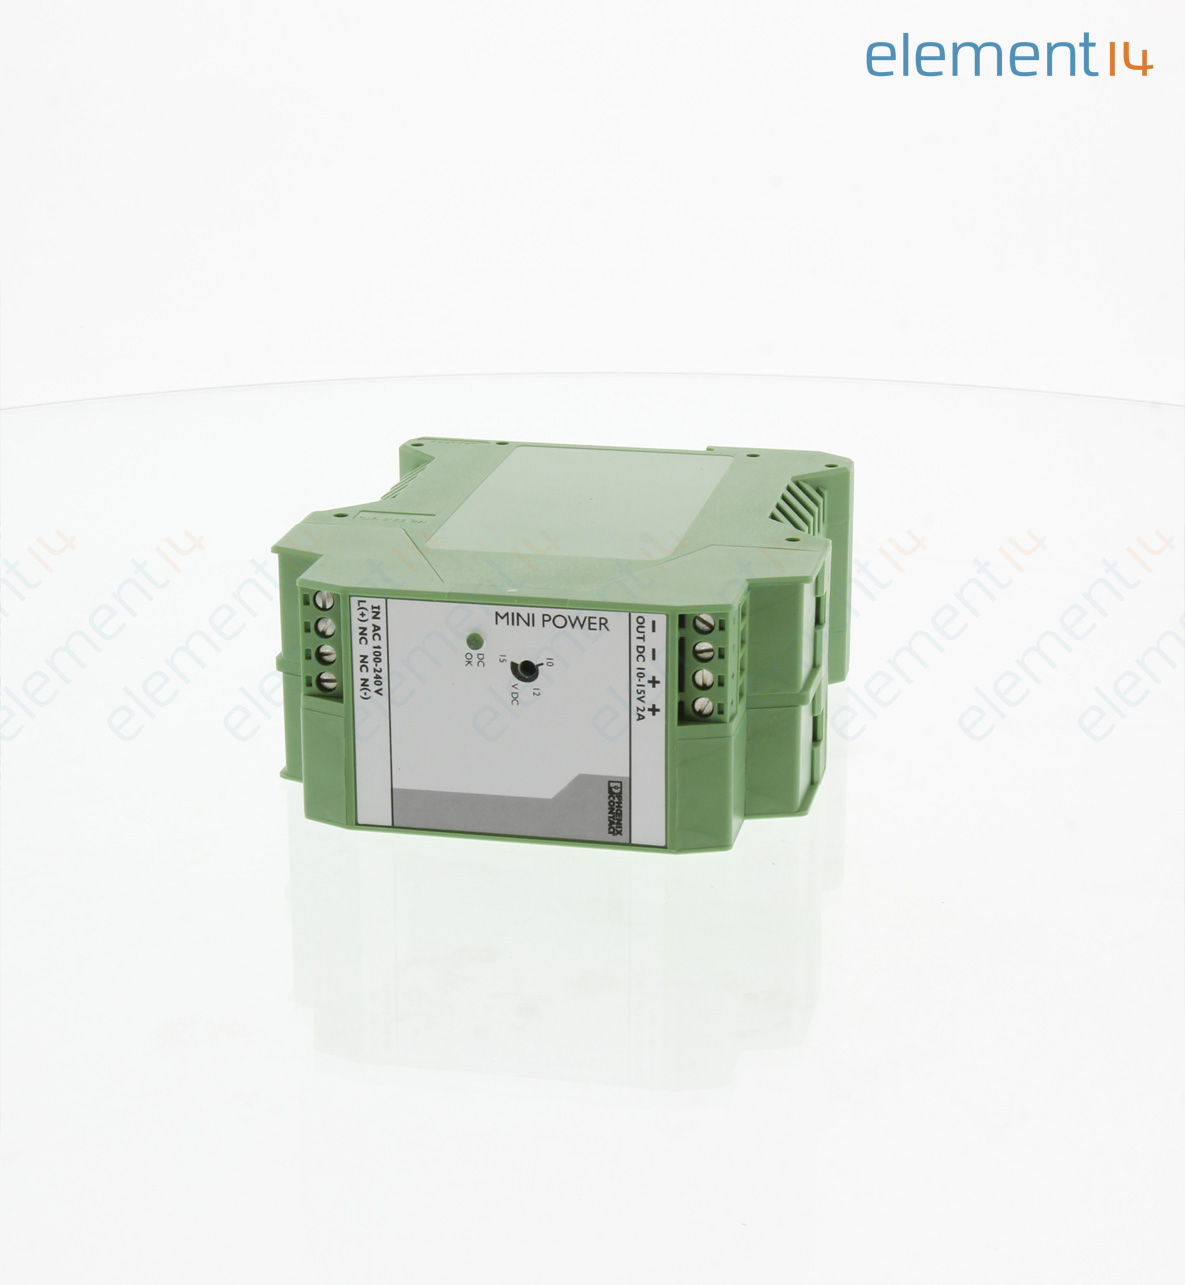 Mini Ps 100 240ac 10 15dc 2 Phoenix Contact Ac Dc Din Rail Power Innovative Circuit Ict120126a Comm Series 120vac 12vdc 6 Amp Add To Compare